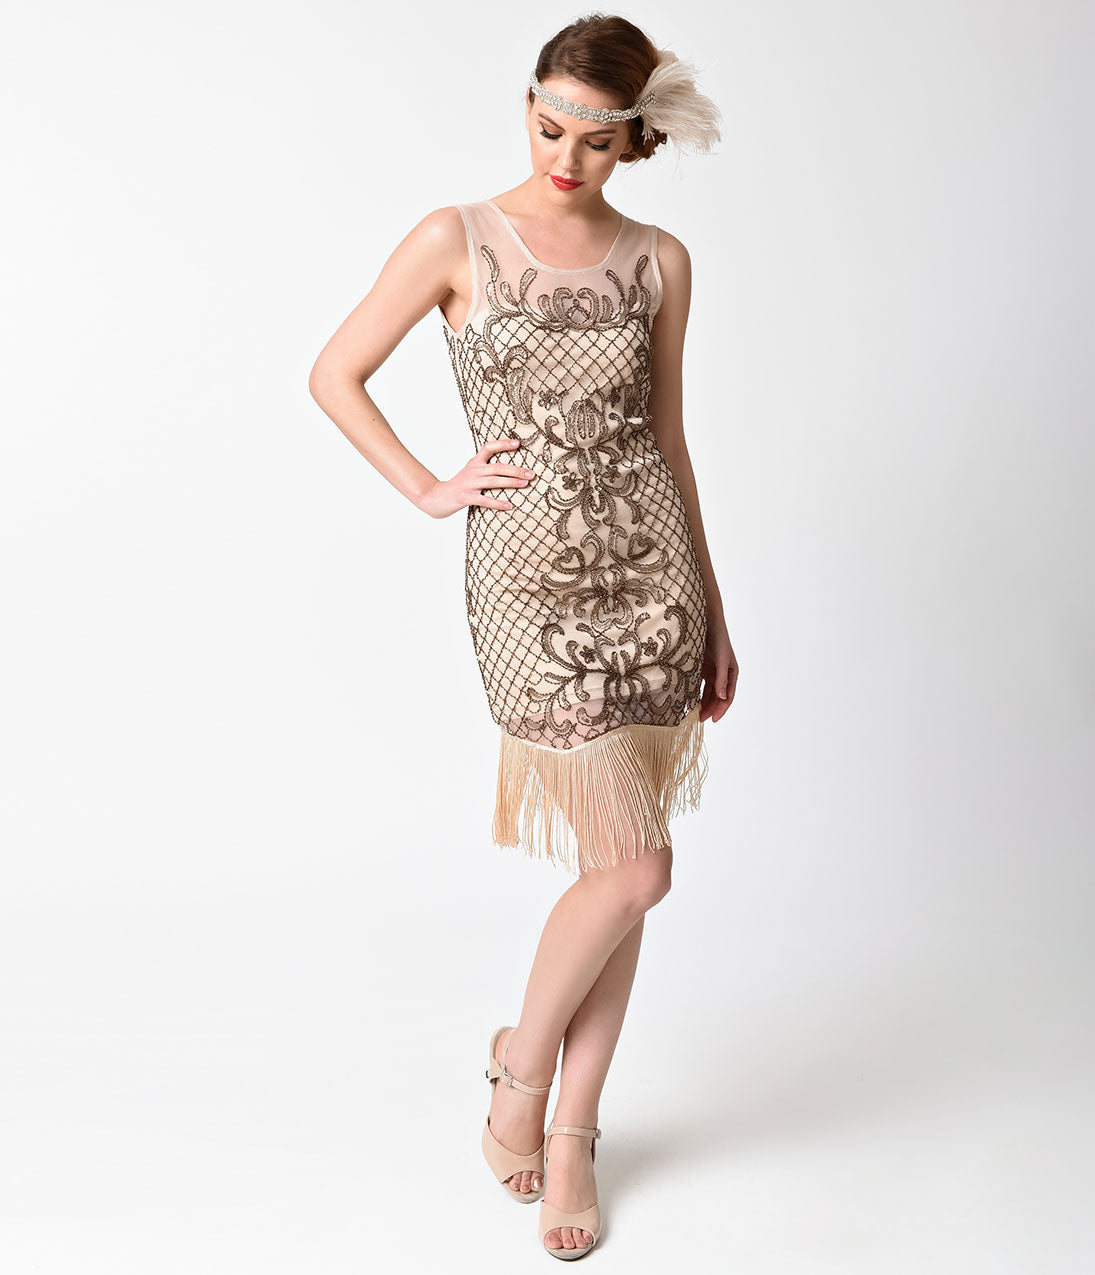 1920s Style Dresses, Flapper Dresses 1920s Style Beige Filigree Sleeveless Beaded Flapper Dress $48.00 AT vintagedancer.com